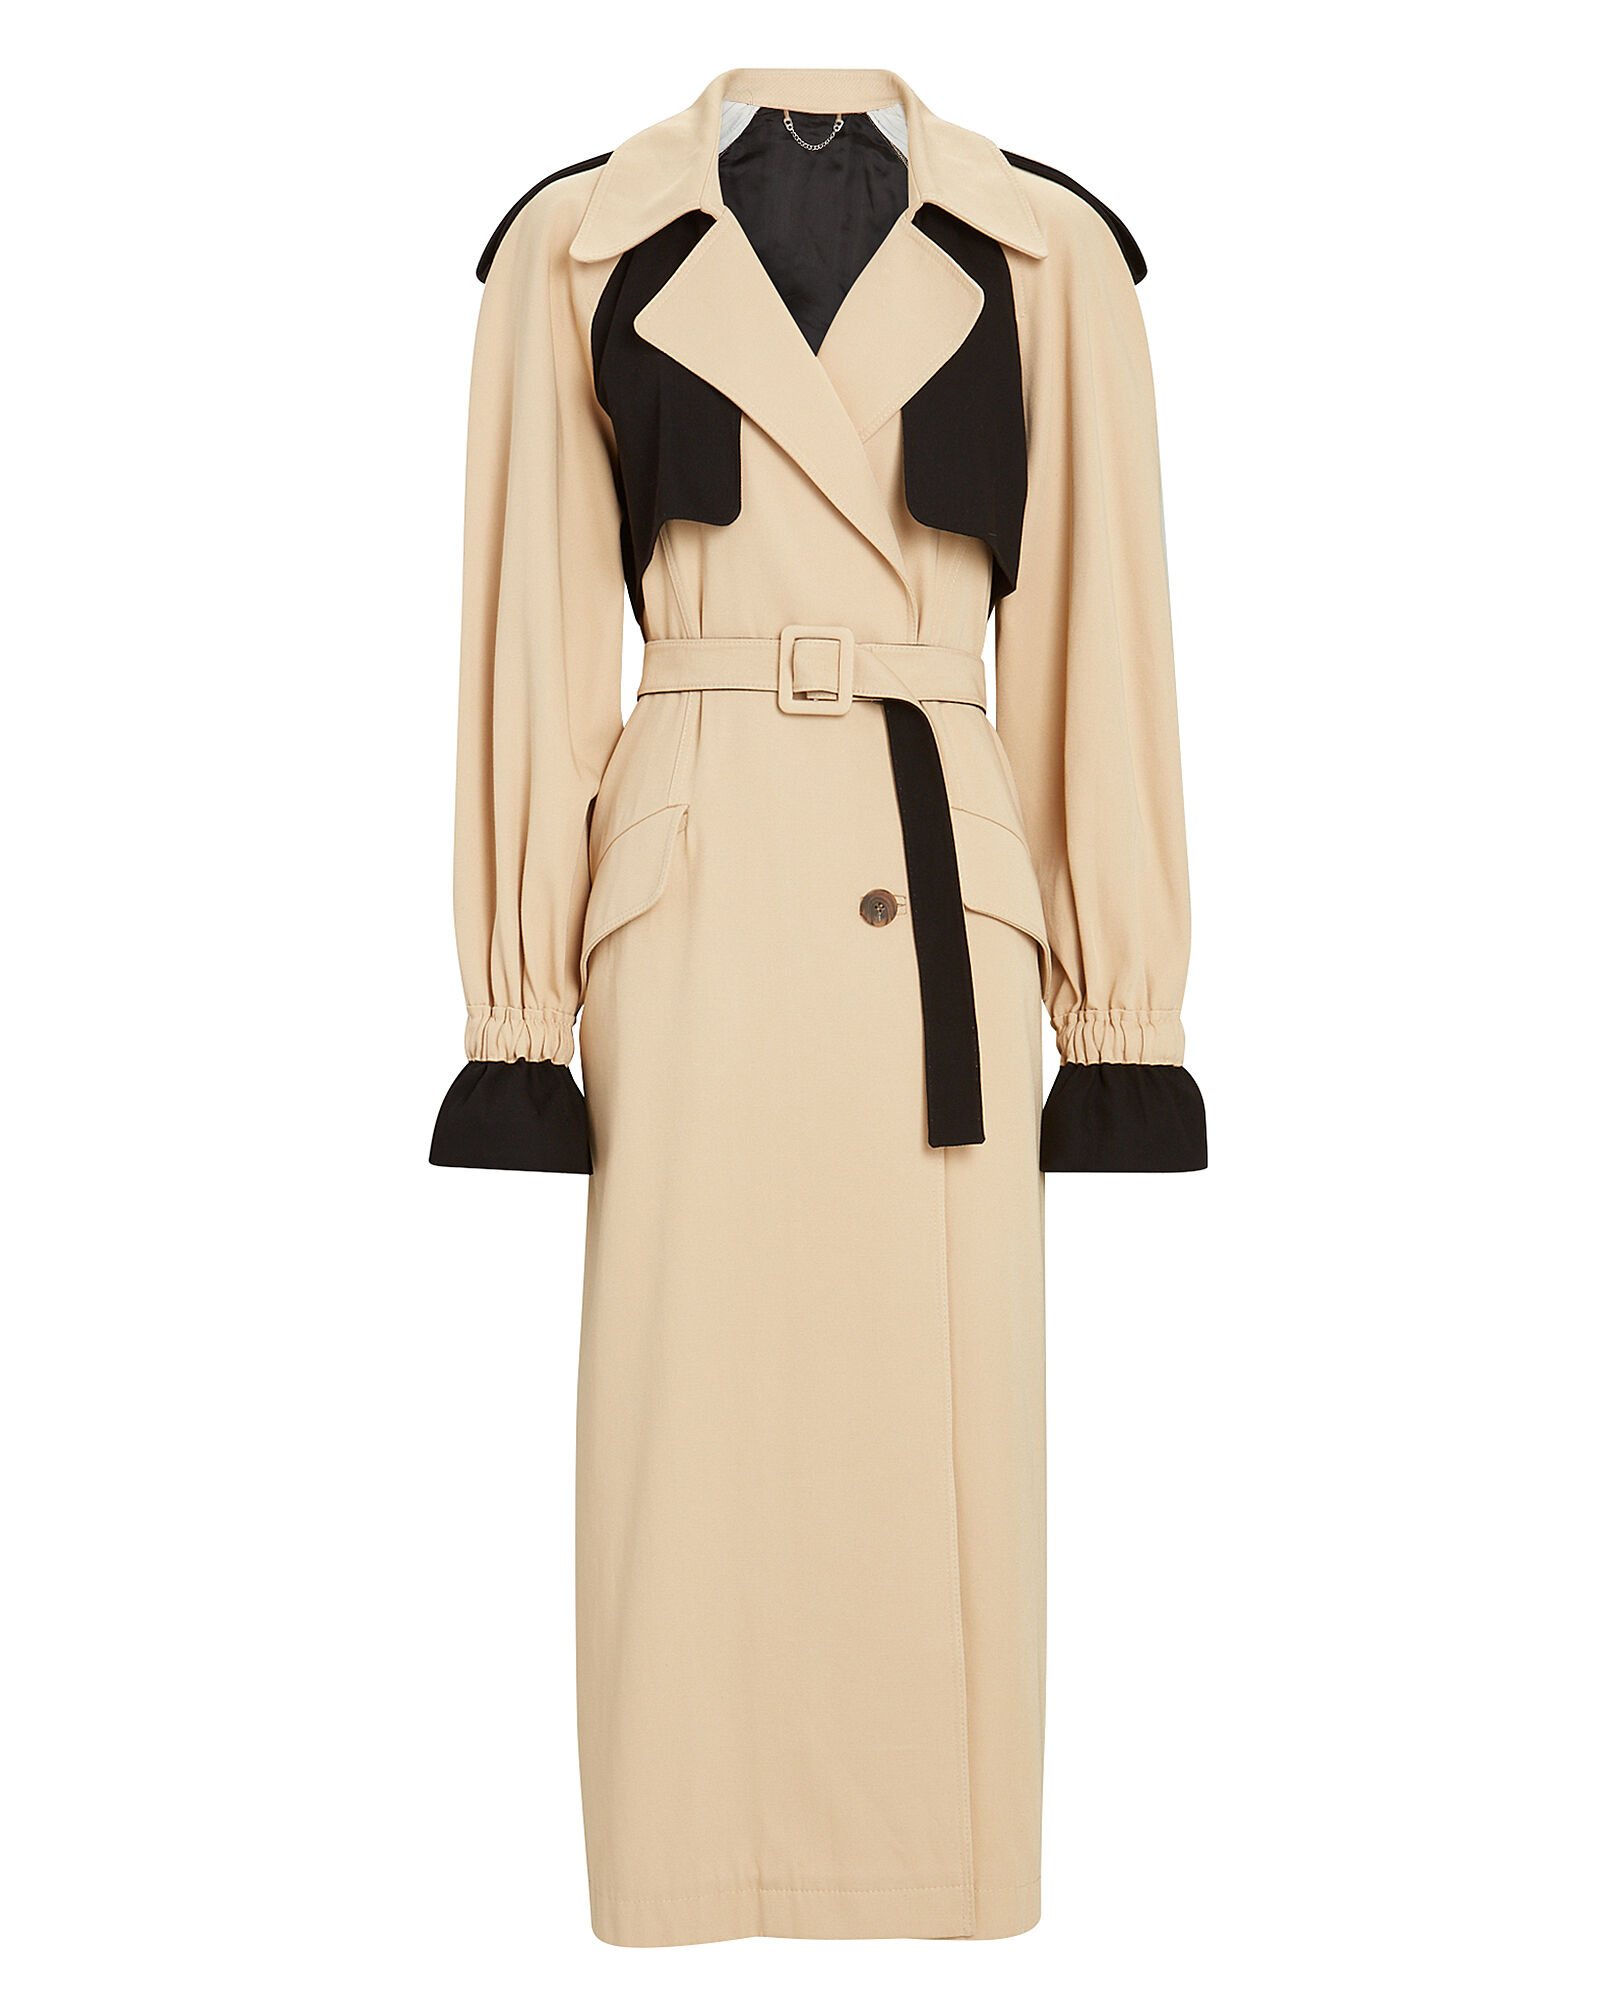 Paige Colorblocked Trench Coat, BEIGE/BLACK, hi-res